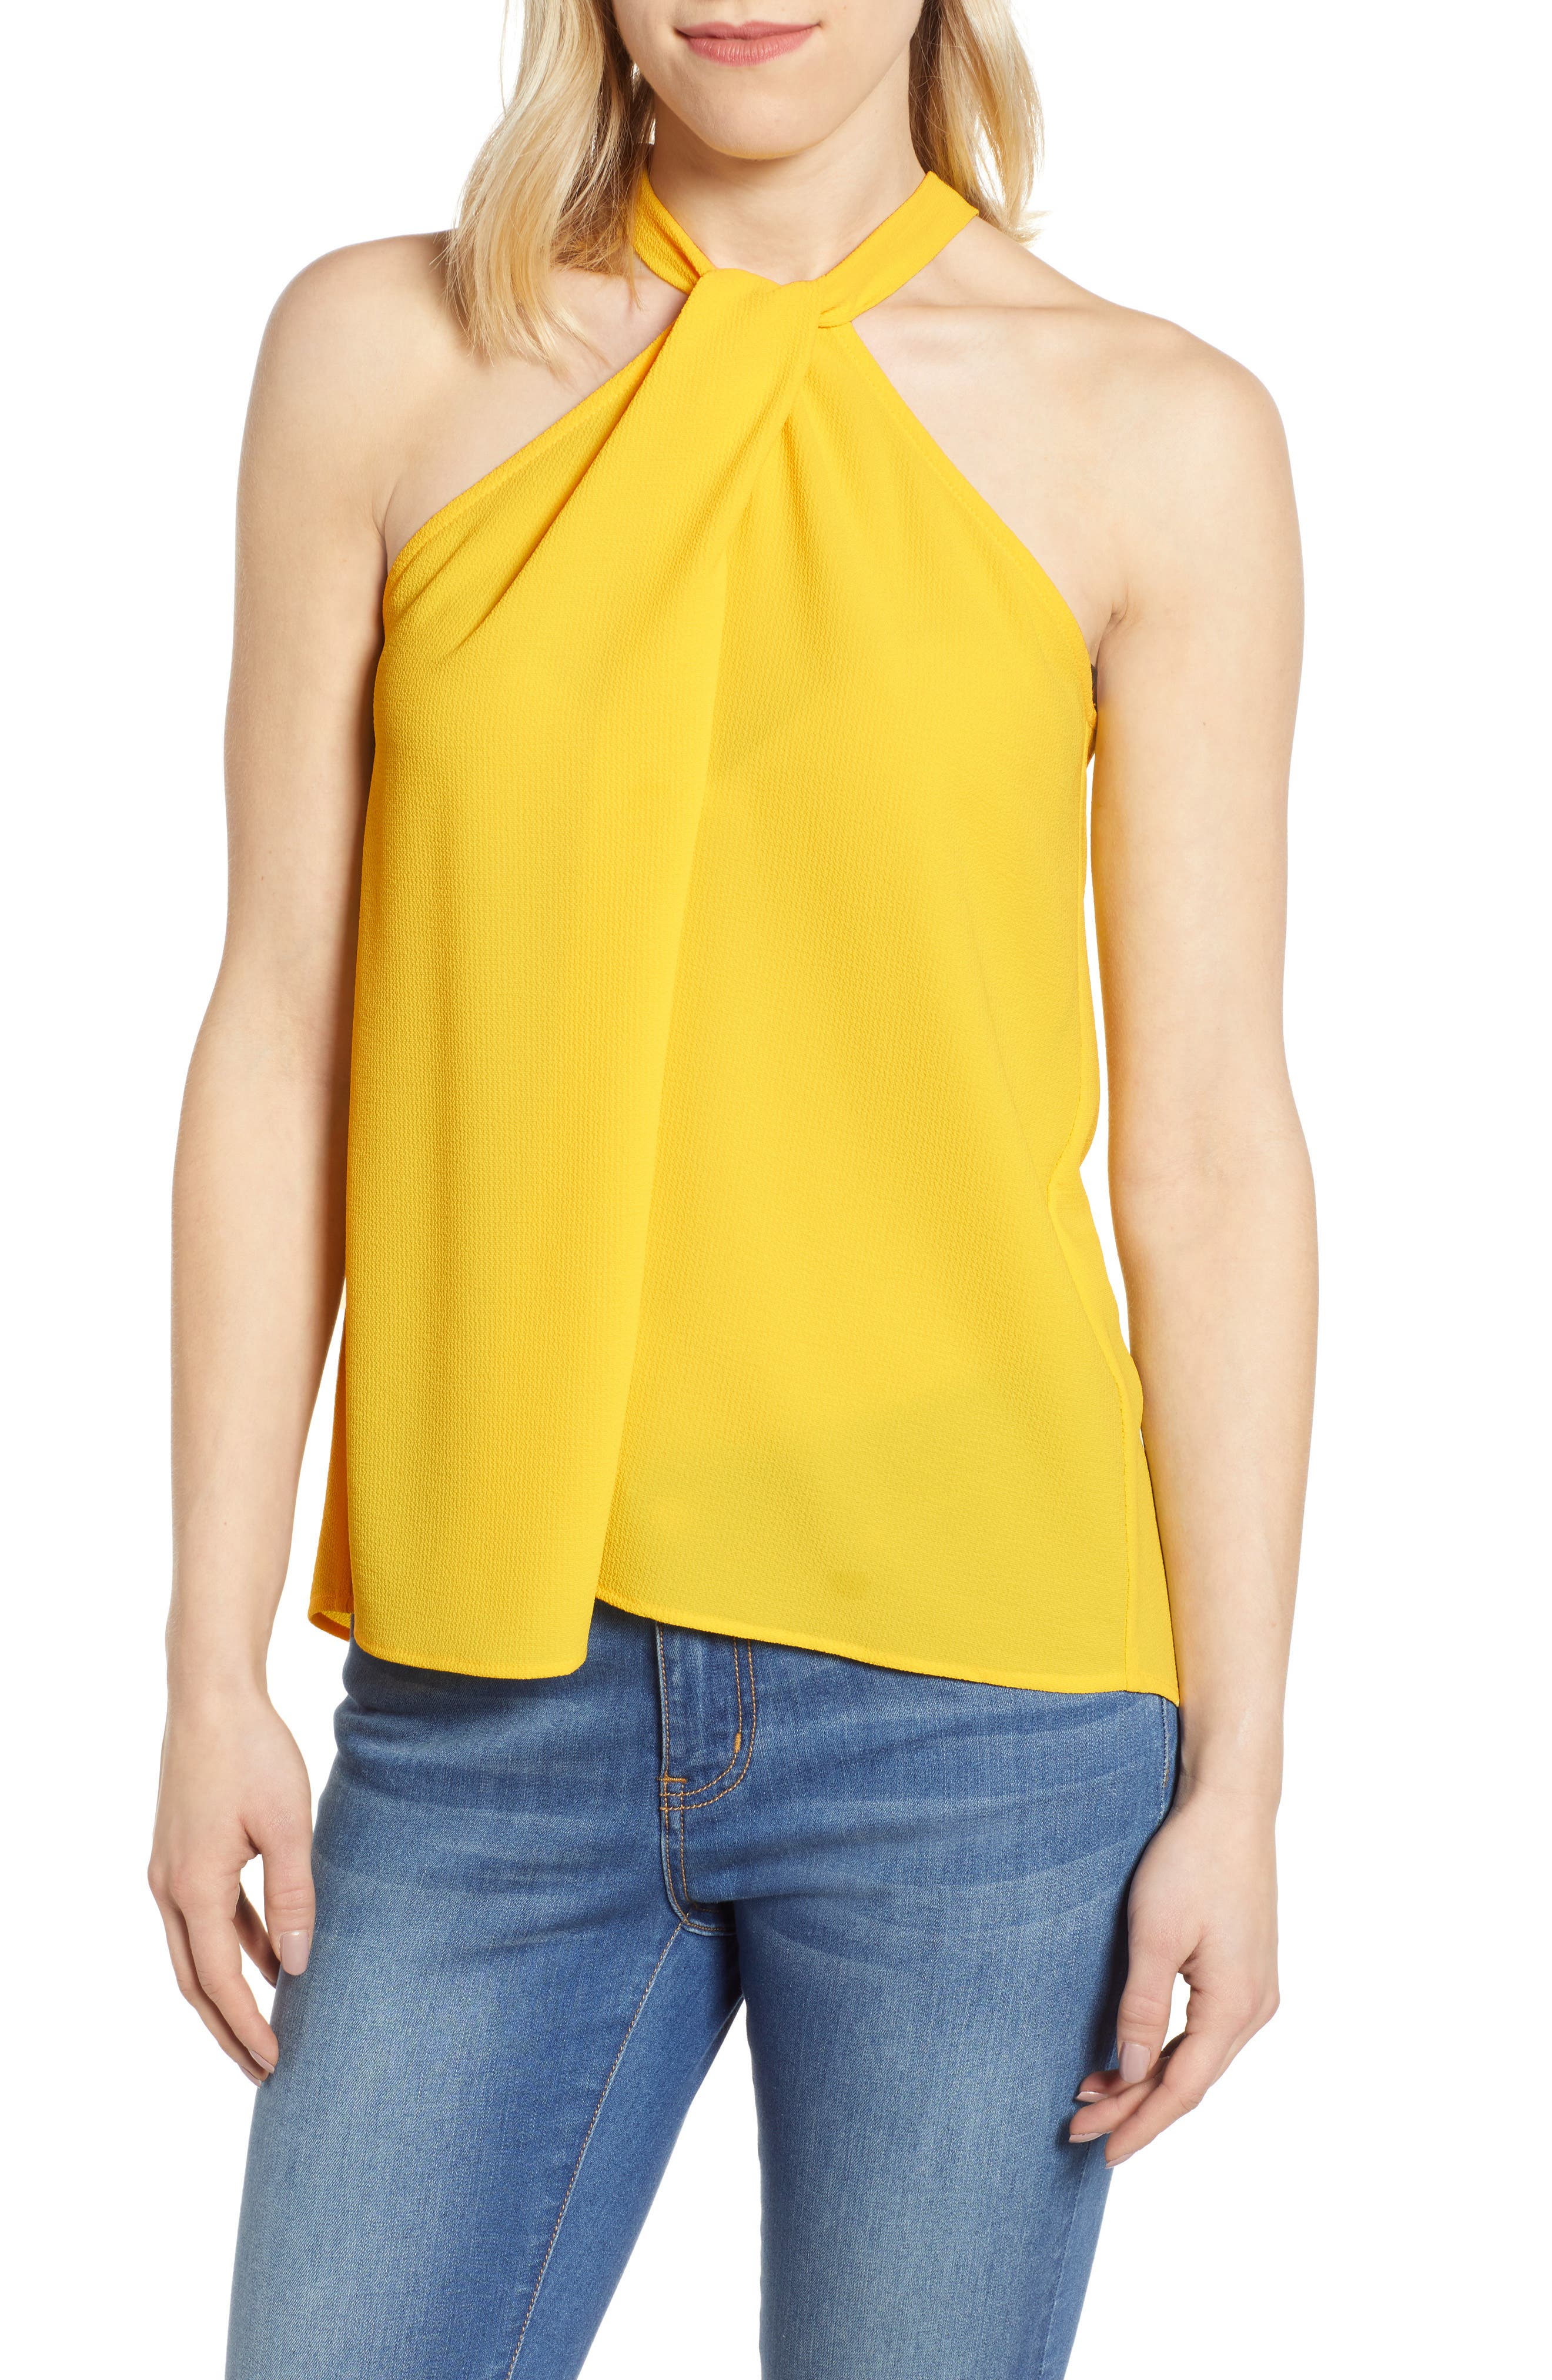 GIBSON,                             x International Women's Day Chelsea Halter Neck Date Top,                             Main thumbnail 1, color,                             YELLOW